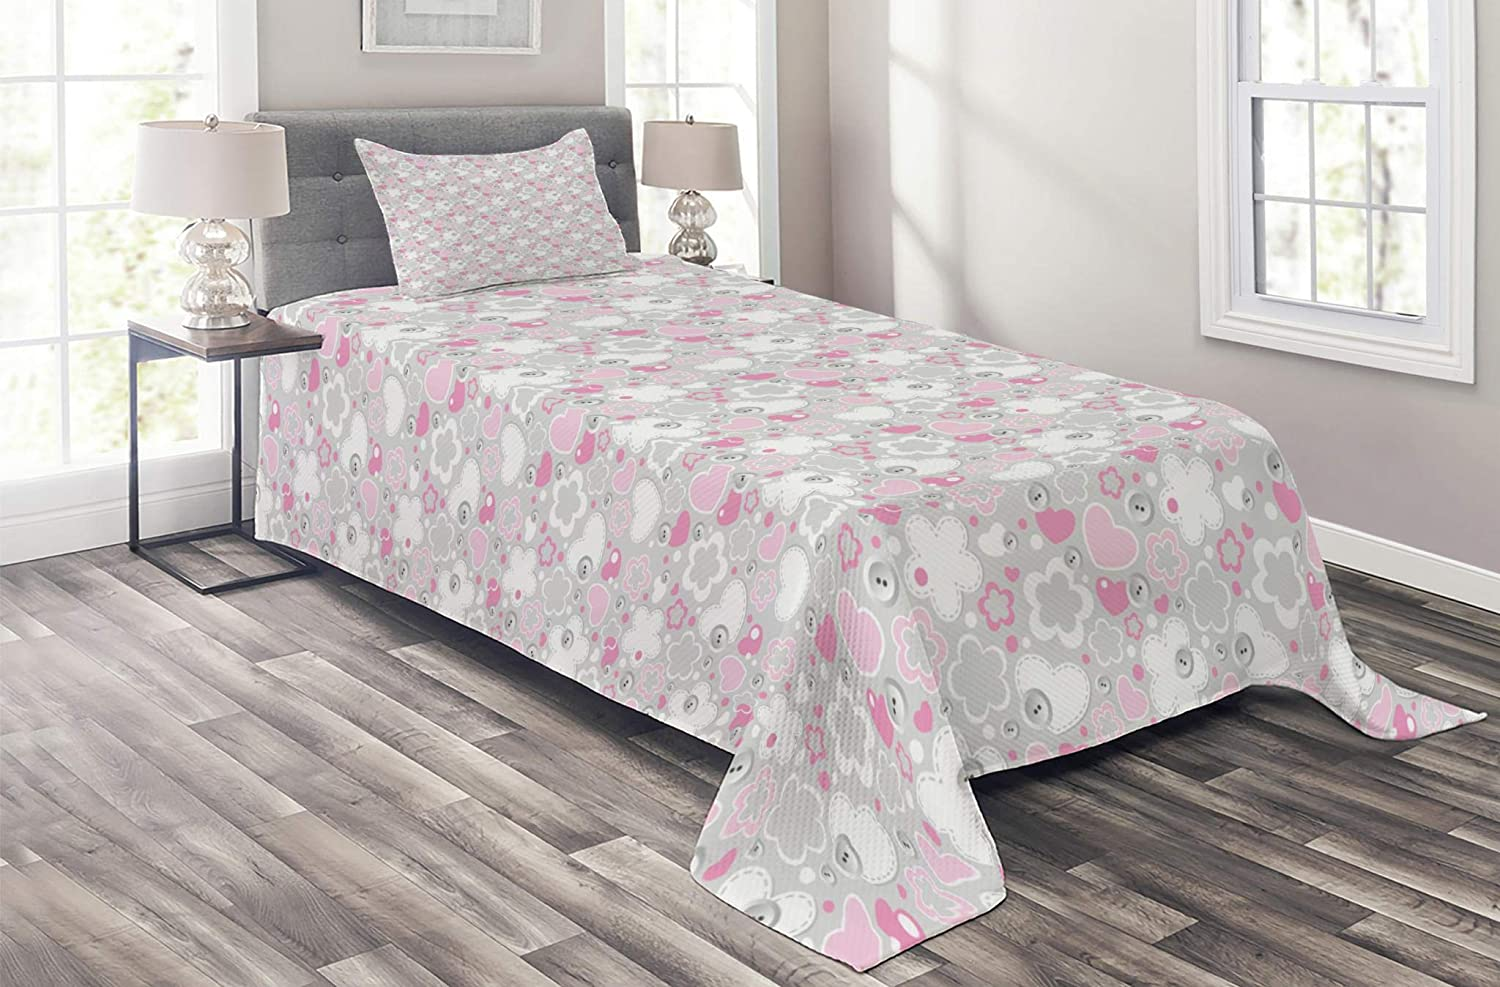 Lunarable NEW before selling ☆ Grey Coverlet 5 ☆ popular Patchwork Abstract Style Flowers Hearts